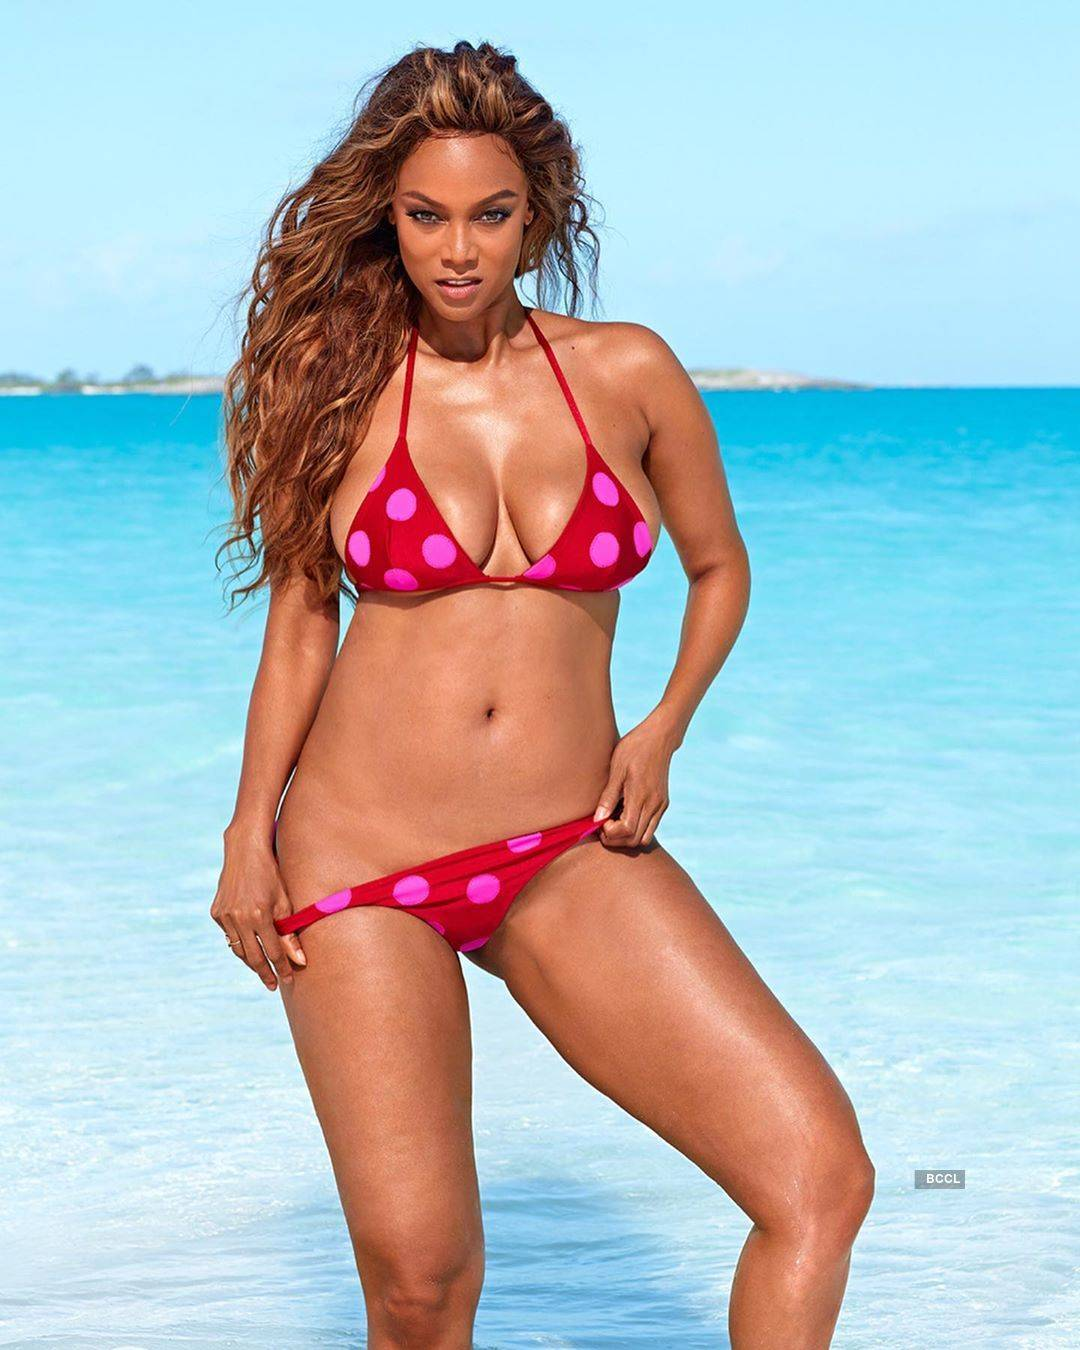 Tyra Banks will set your hearts racing with her glamorous photos